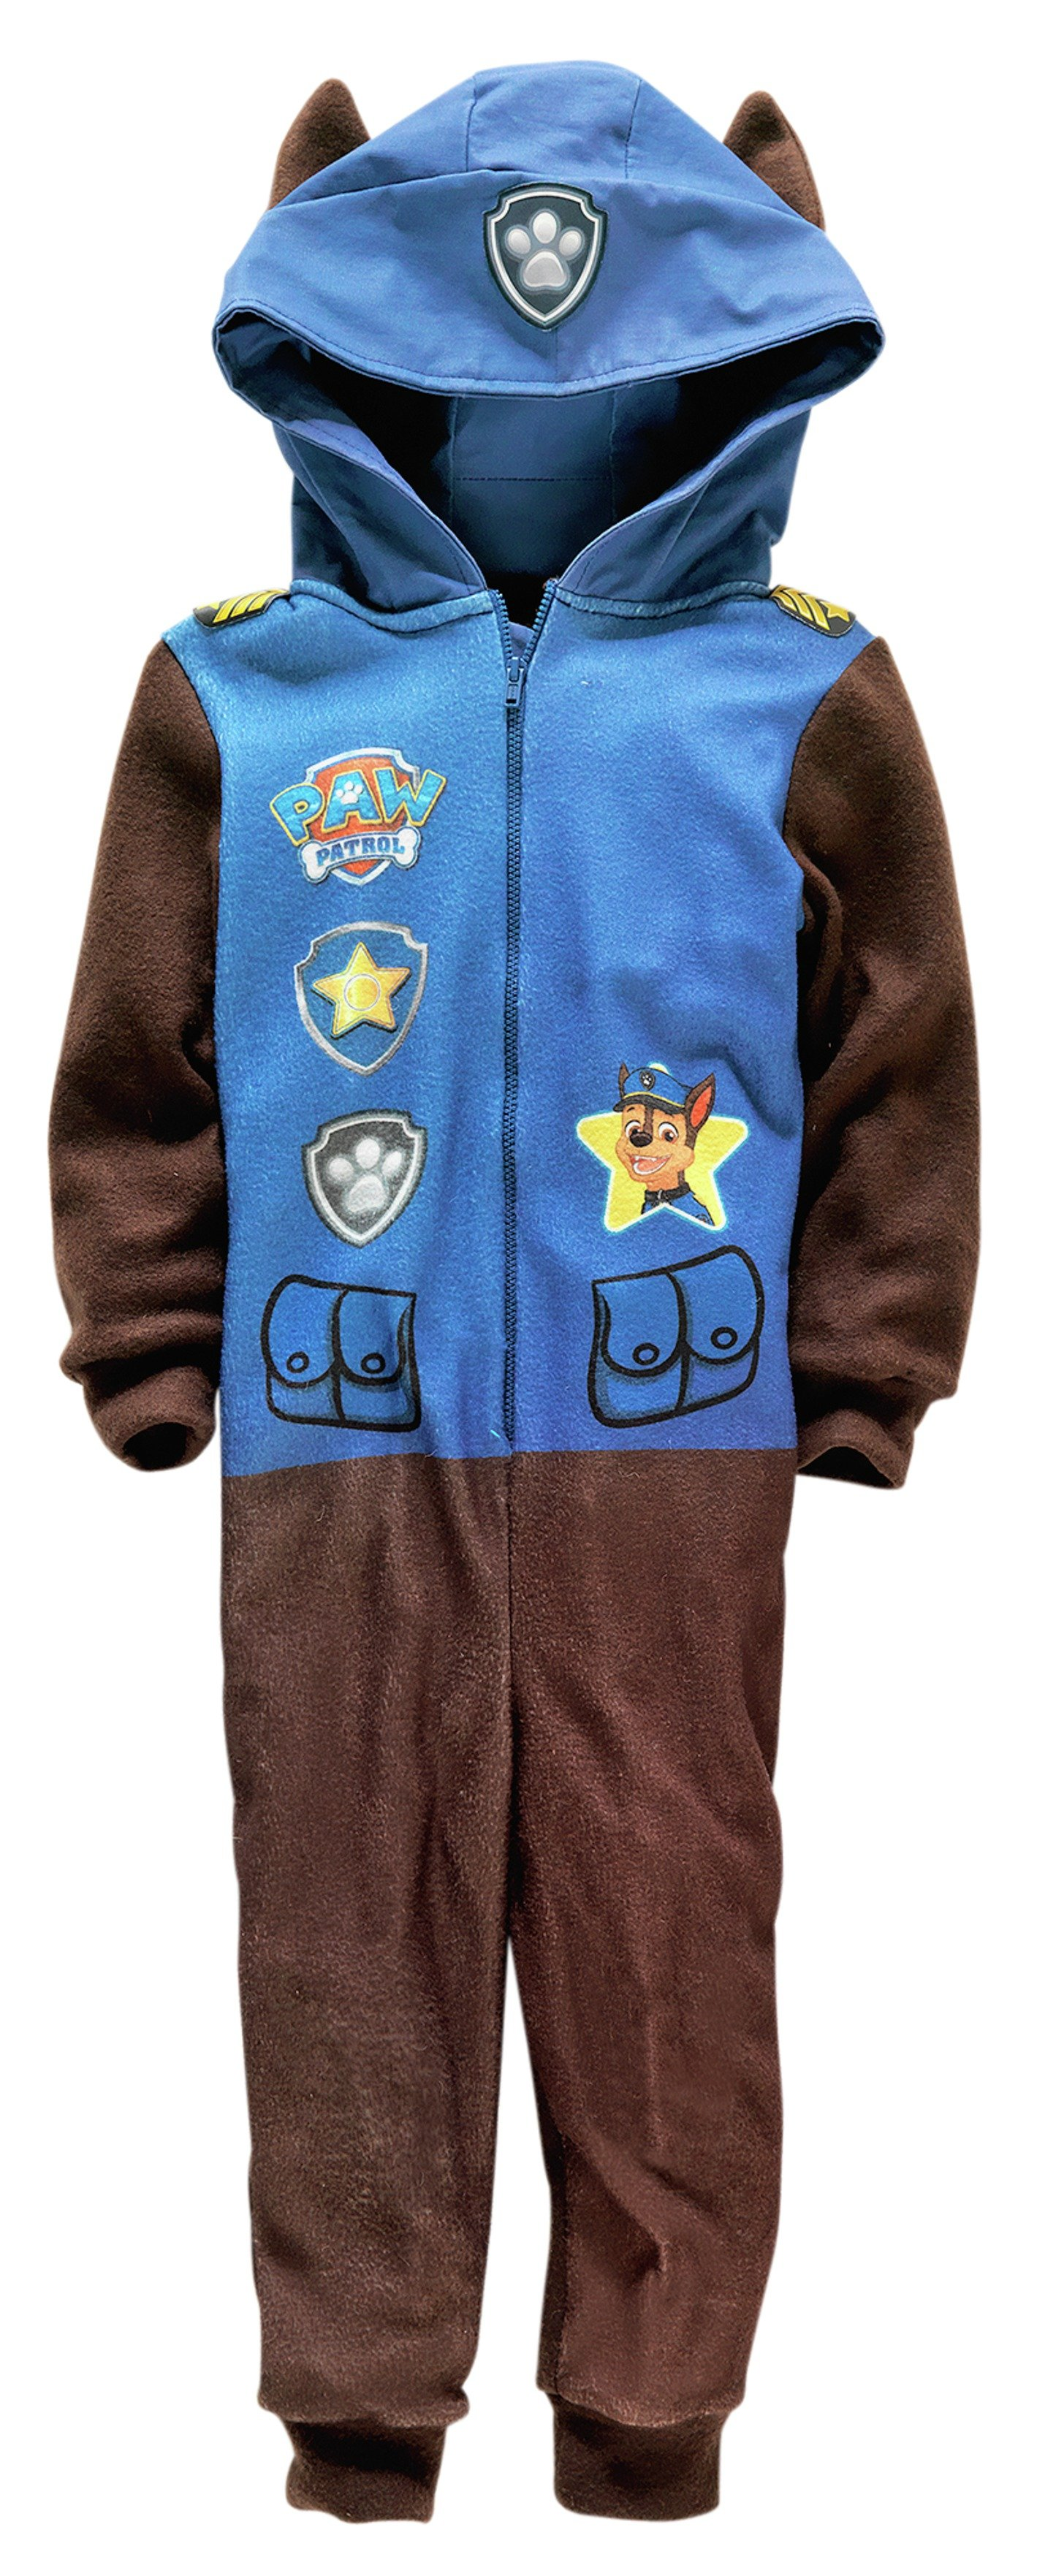 'Paw Patrol Novelty Onesie - 2-3 Years